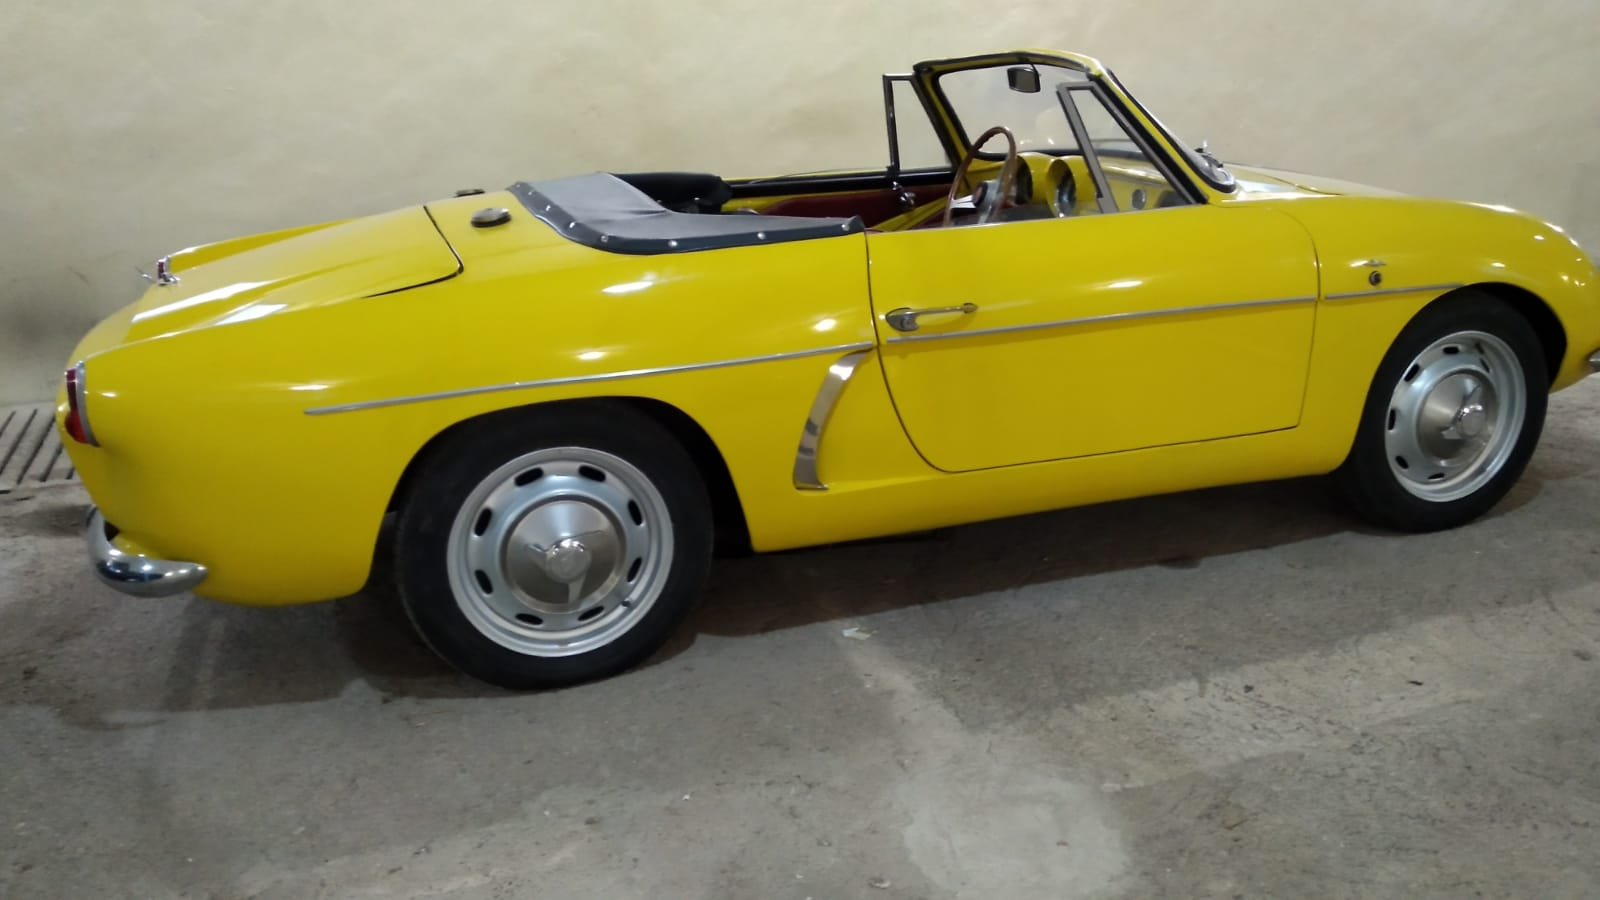 1966 Renault Alpine A108 Cabriolet 850cc.- matching Nr. For Sale (picture 1 of 2)